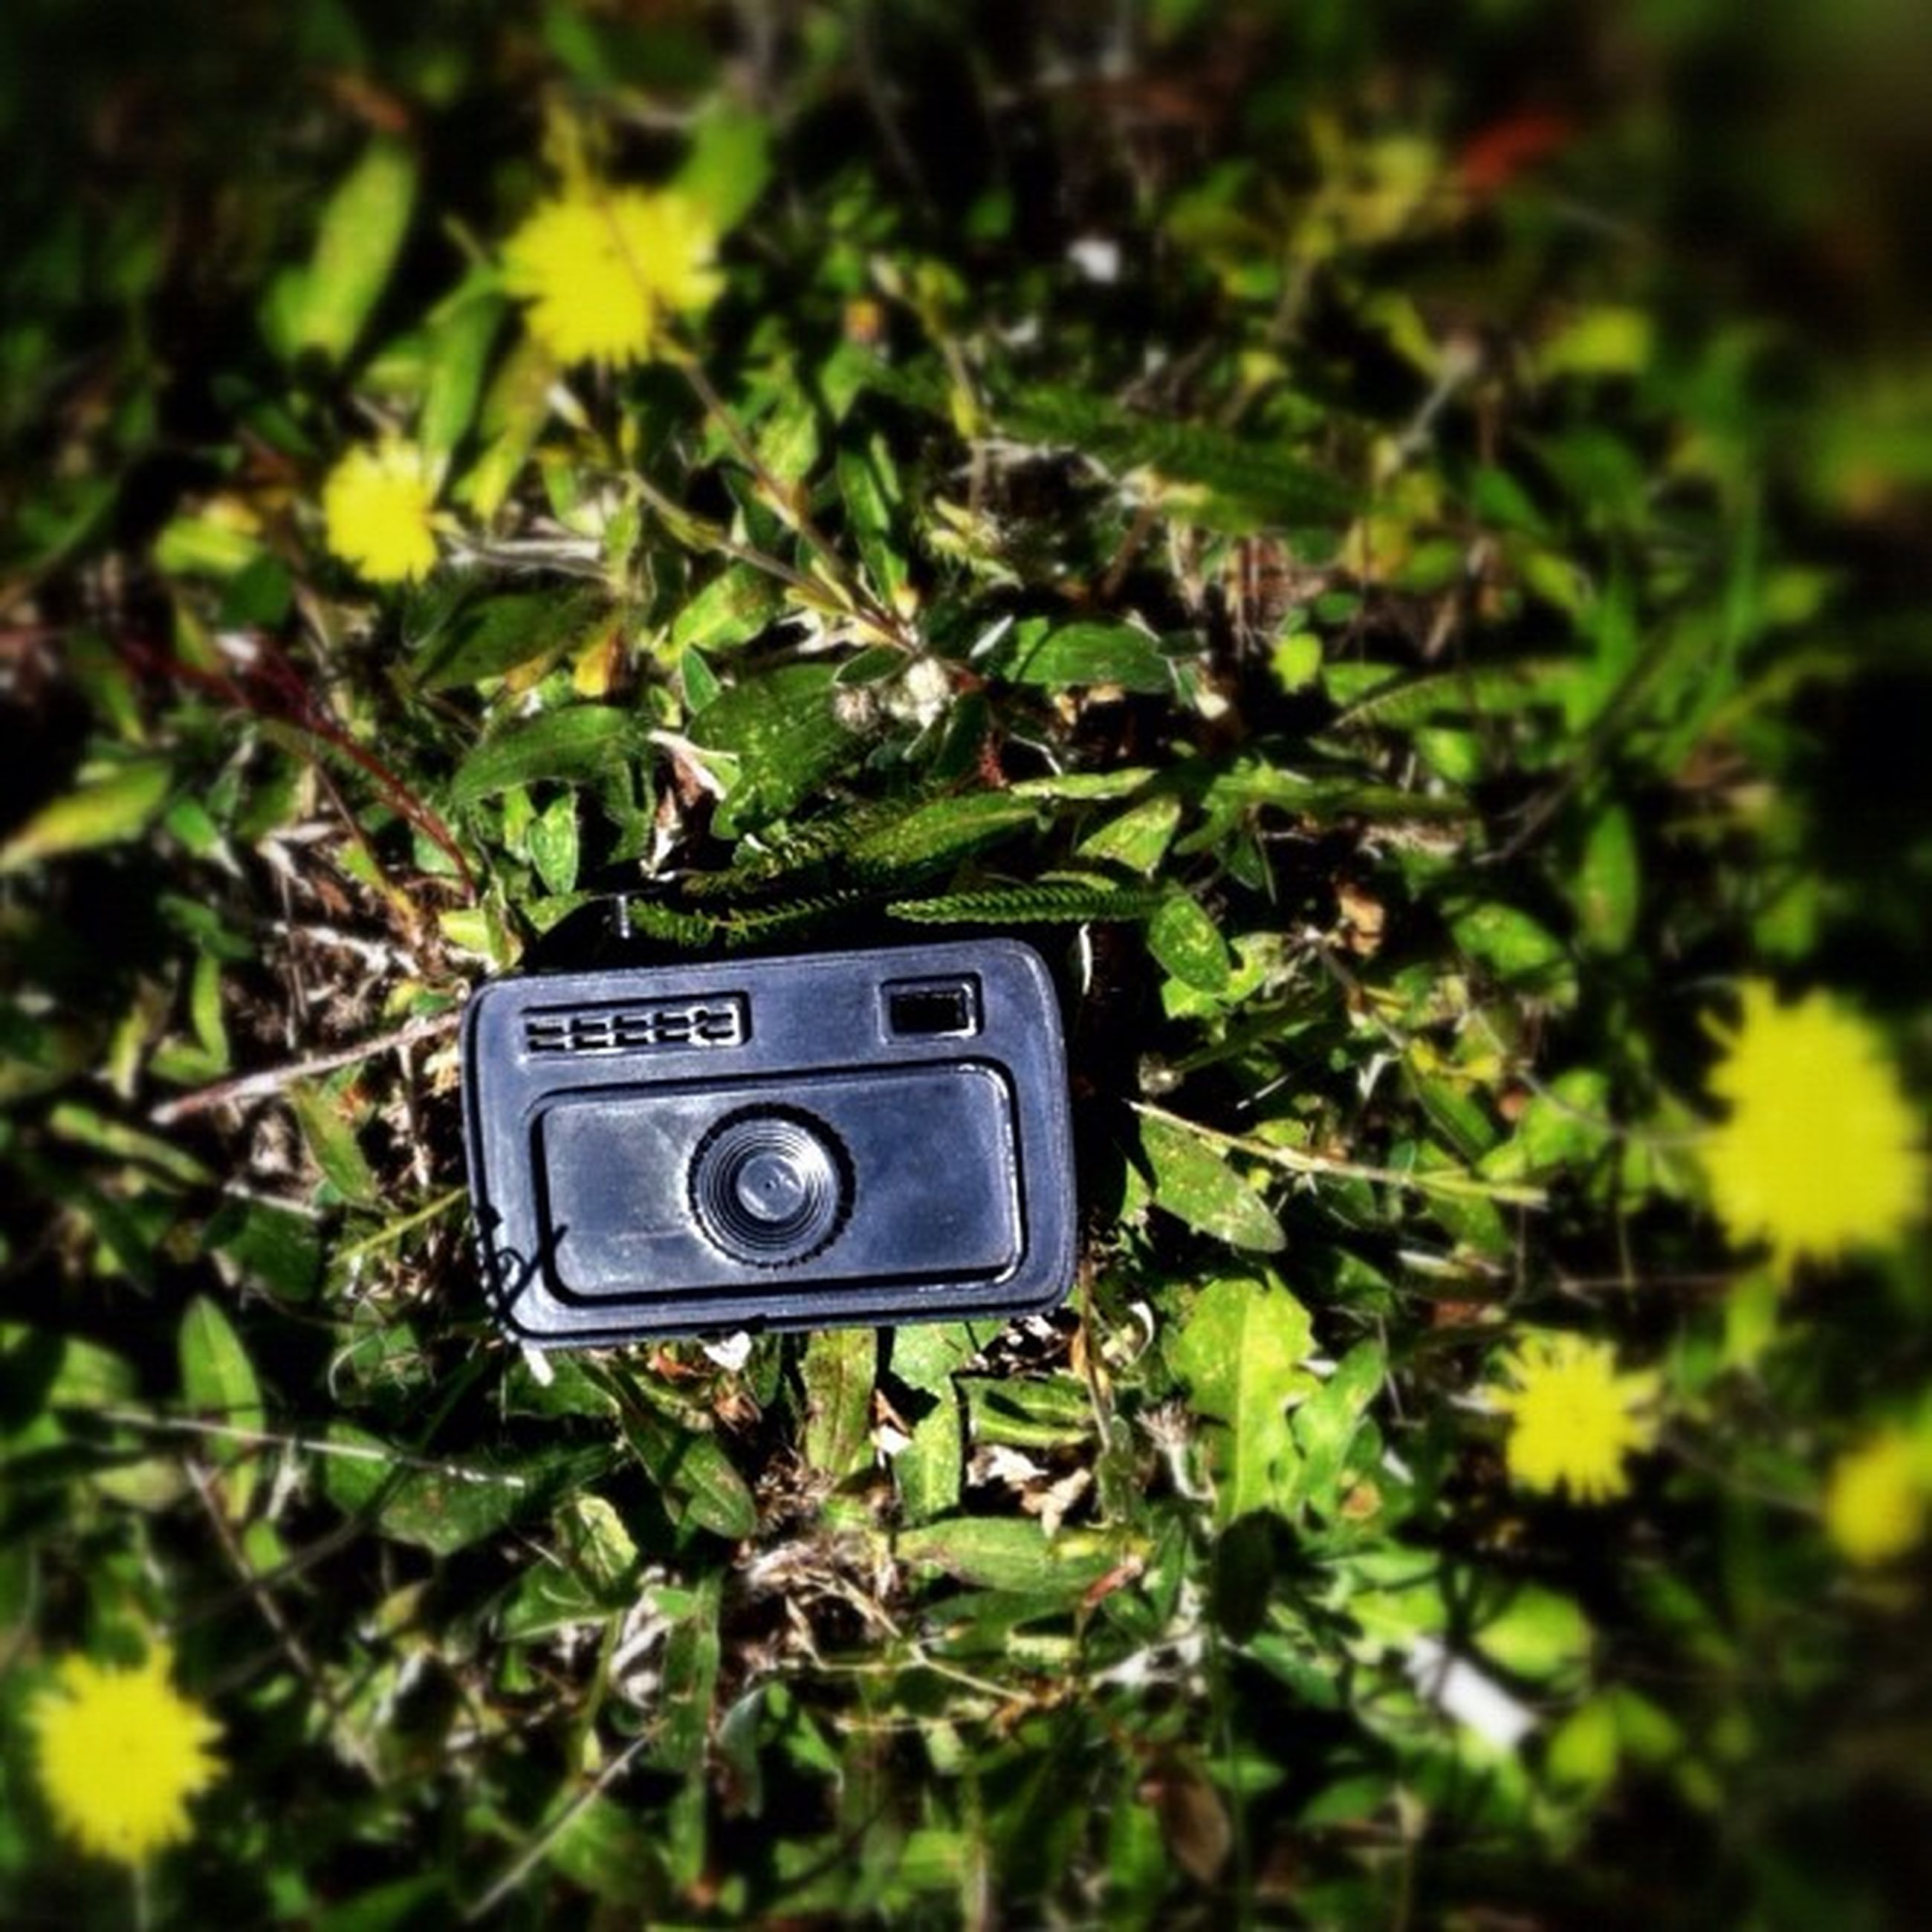 grass, technology, photography themes, field, green color, focus on foreground, growth, close-up, selective focus, plant, communication, wireless technology, photographing, camera - photographic equipment, nature, grassy, one person, flower, day, high angle view